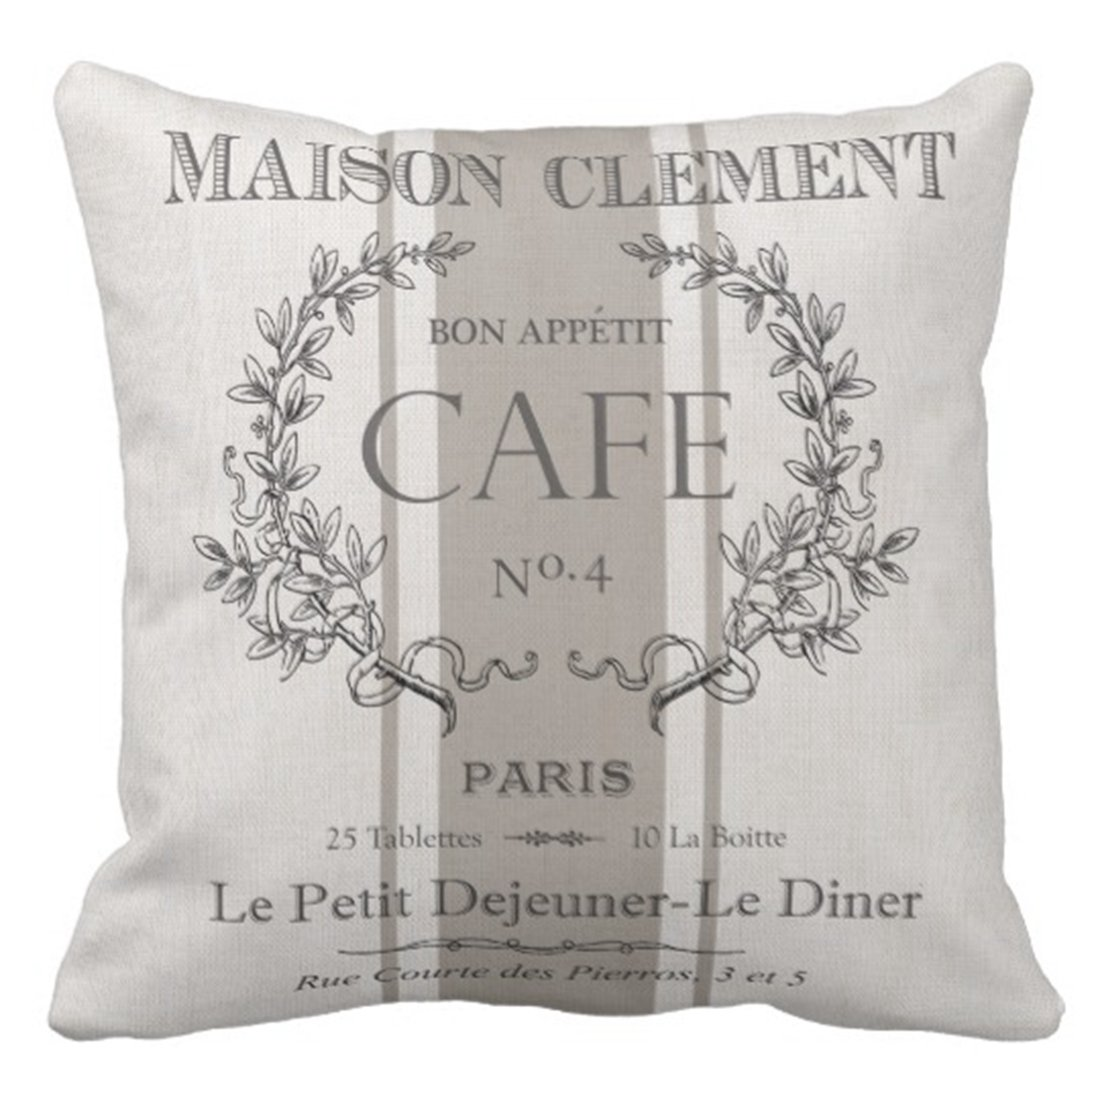 Vintage style French cafe pillow cover for adding French Country, Farmhouse French, or French Nordic style to your home.